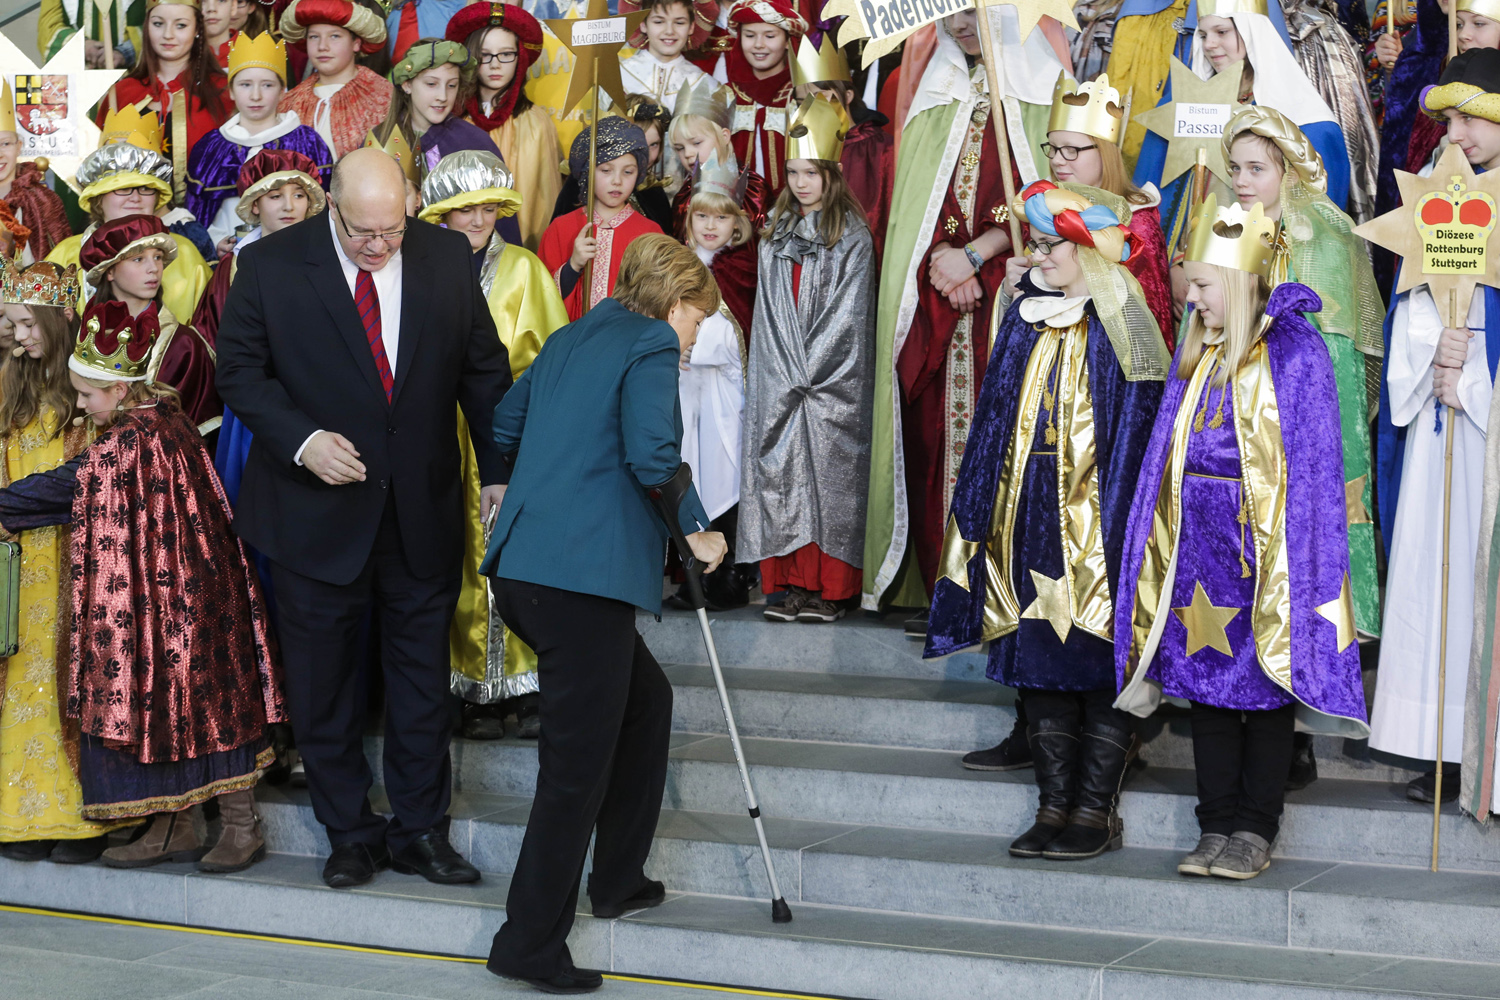 Jan. 7, 2014. The Chief Of Staff At The Chancellery Peter Altmaier, center left,  looks at German Chancellor Angela Merkel, center right, as she arrives with crutches at the annual reception for Carolers at the chancellery in Berlin.